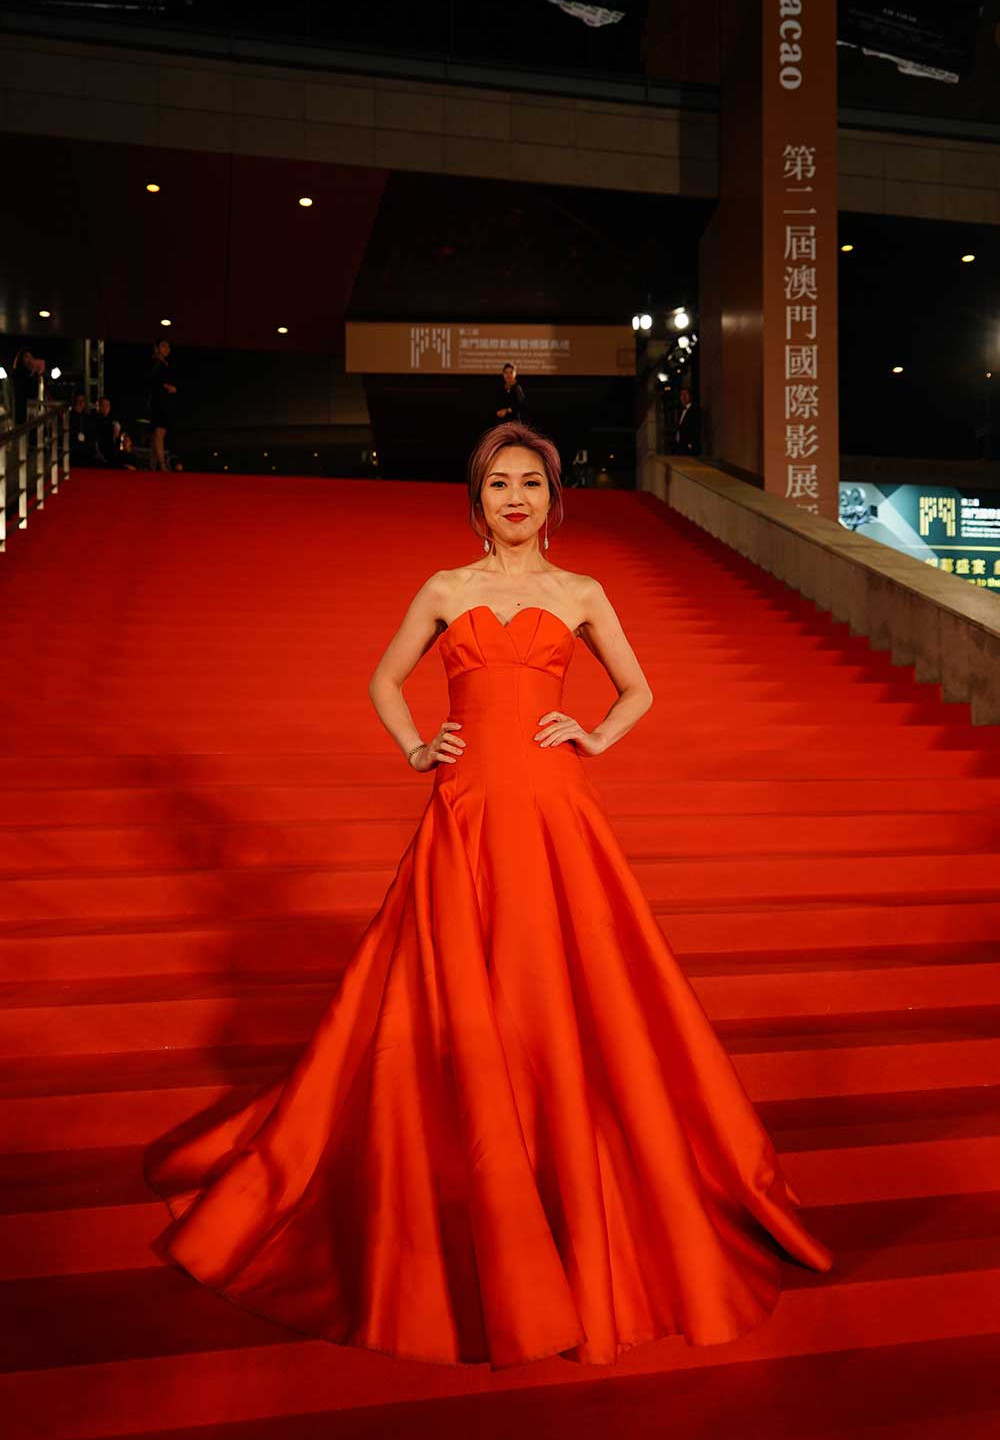 Red Carpet International Film Festival Macao 3